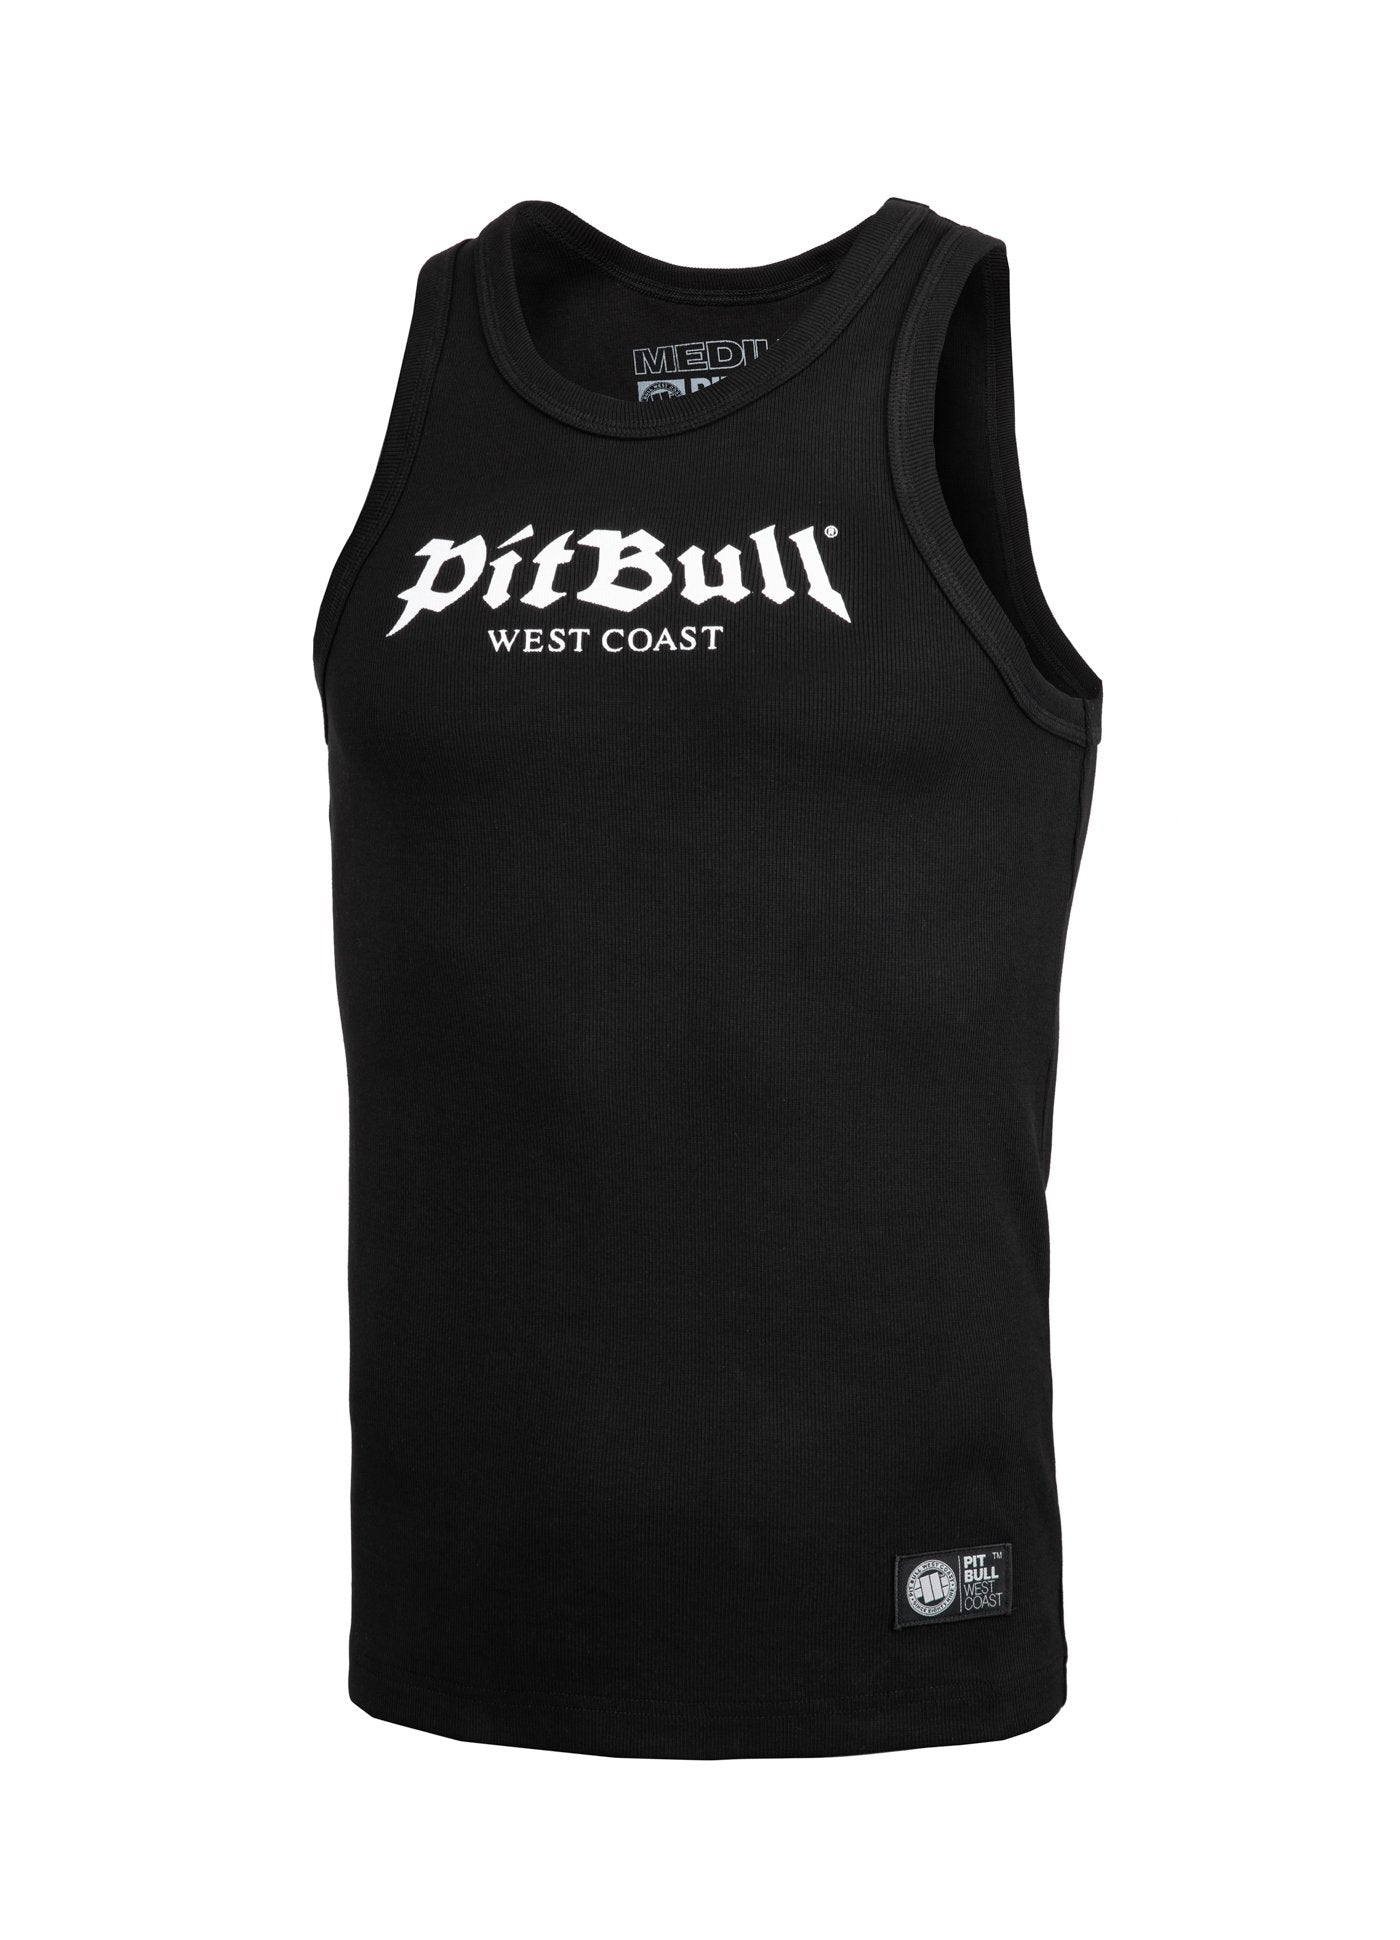 Rib Tank Top Old Logo Black - pitbullwestcoast